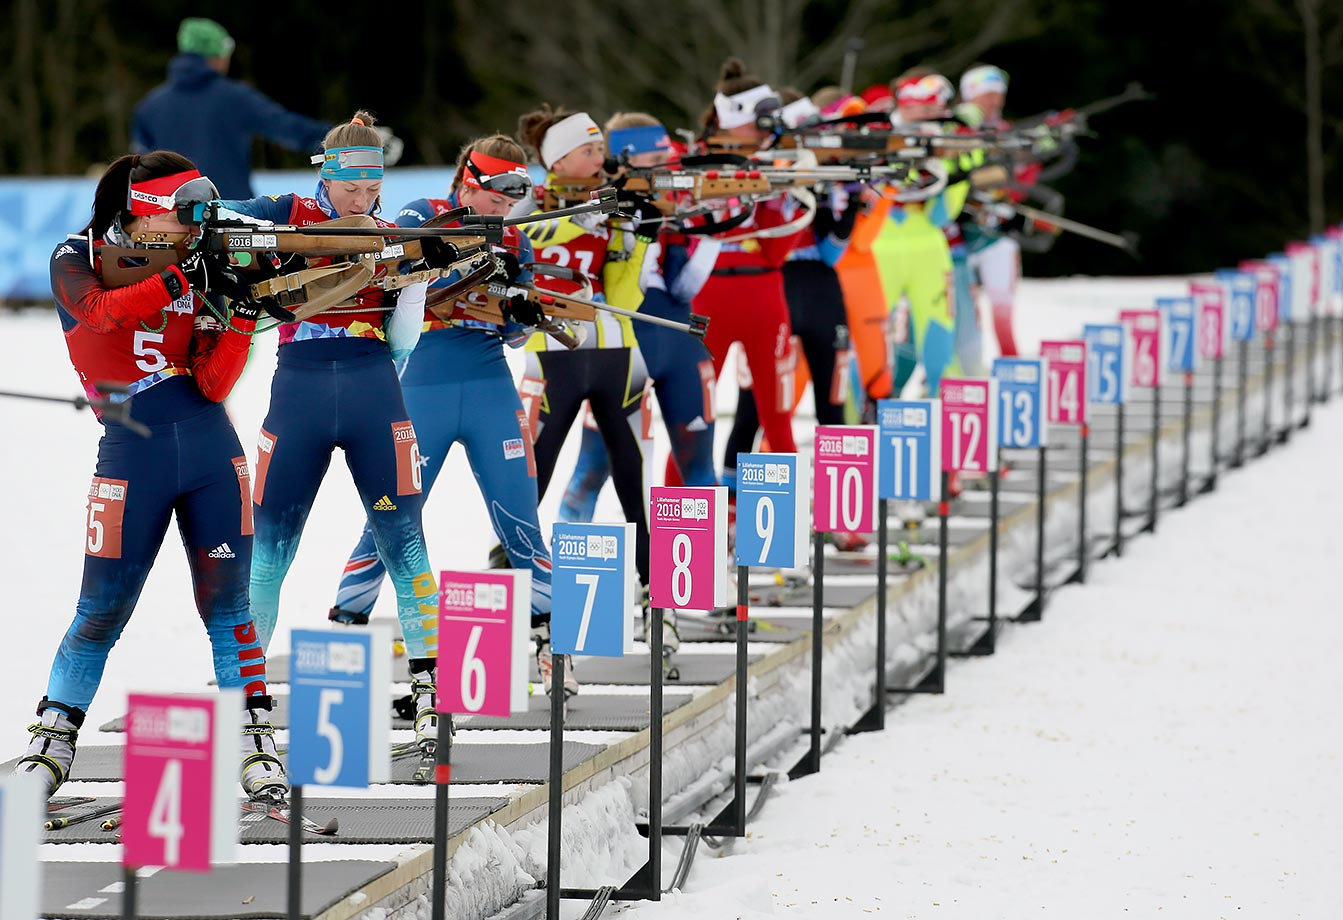 Competitors shoot rifles in the Single Mixed Biathlon Relay at Birkebeineren Biathlon Stadium on Feb. 17, 2016 during the Winter Youth Olympic Games in Lillehammer, Norway.